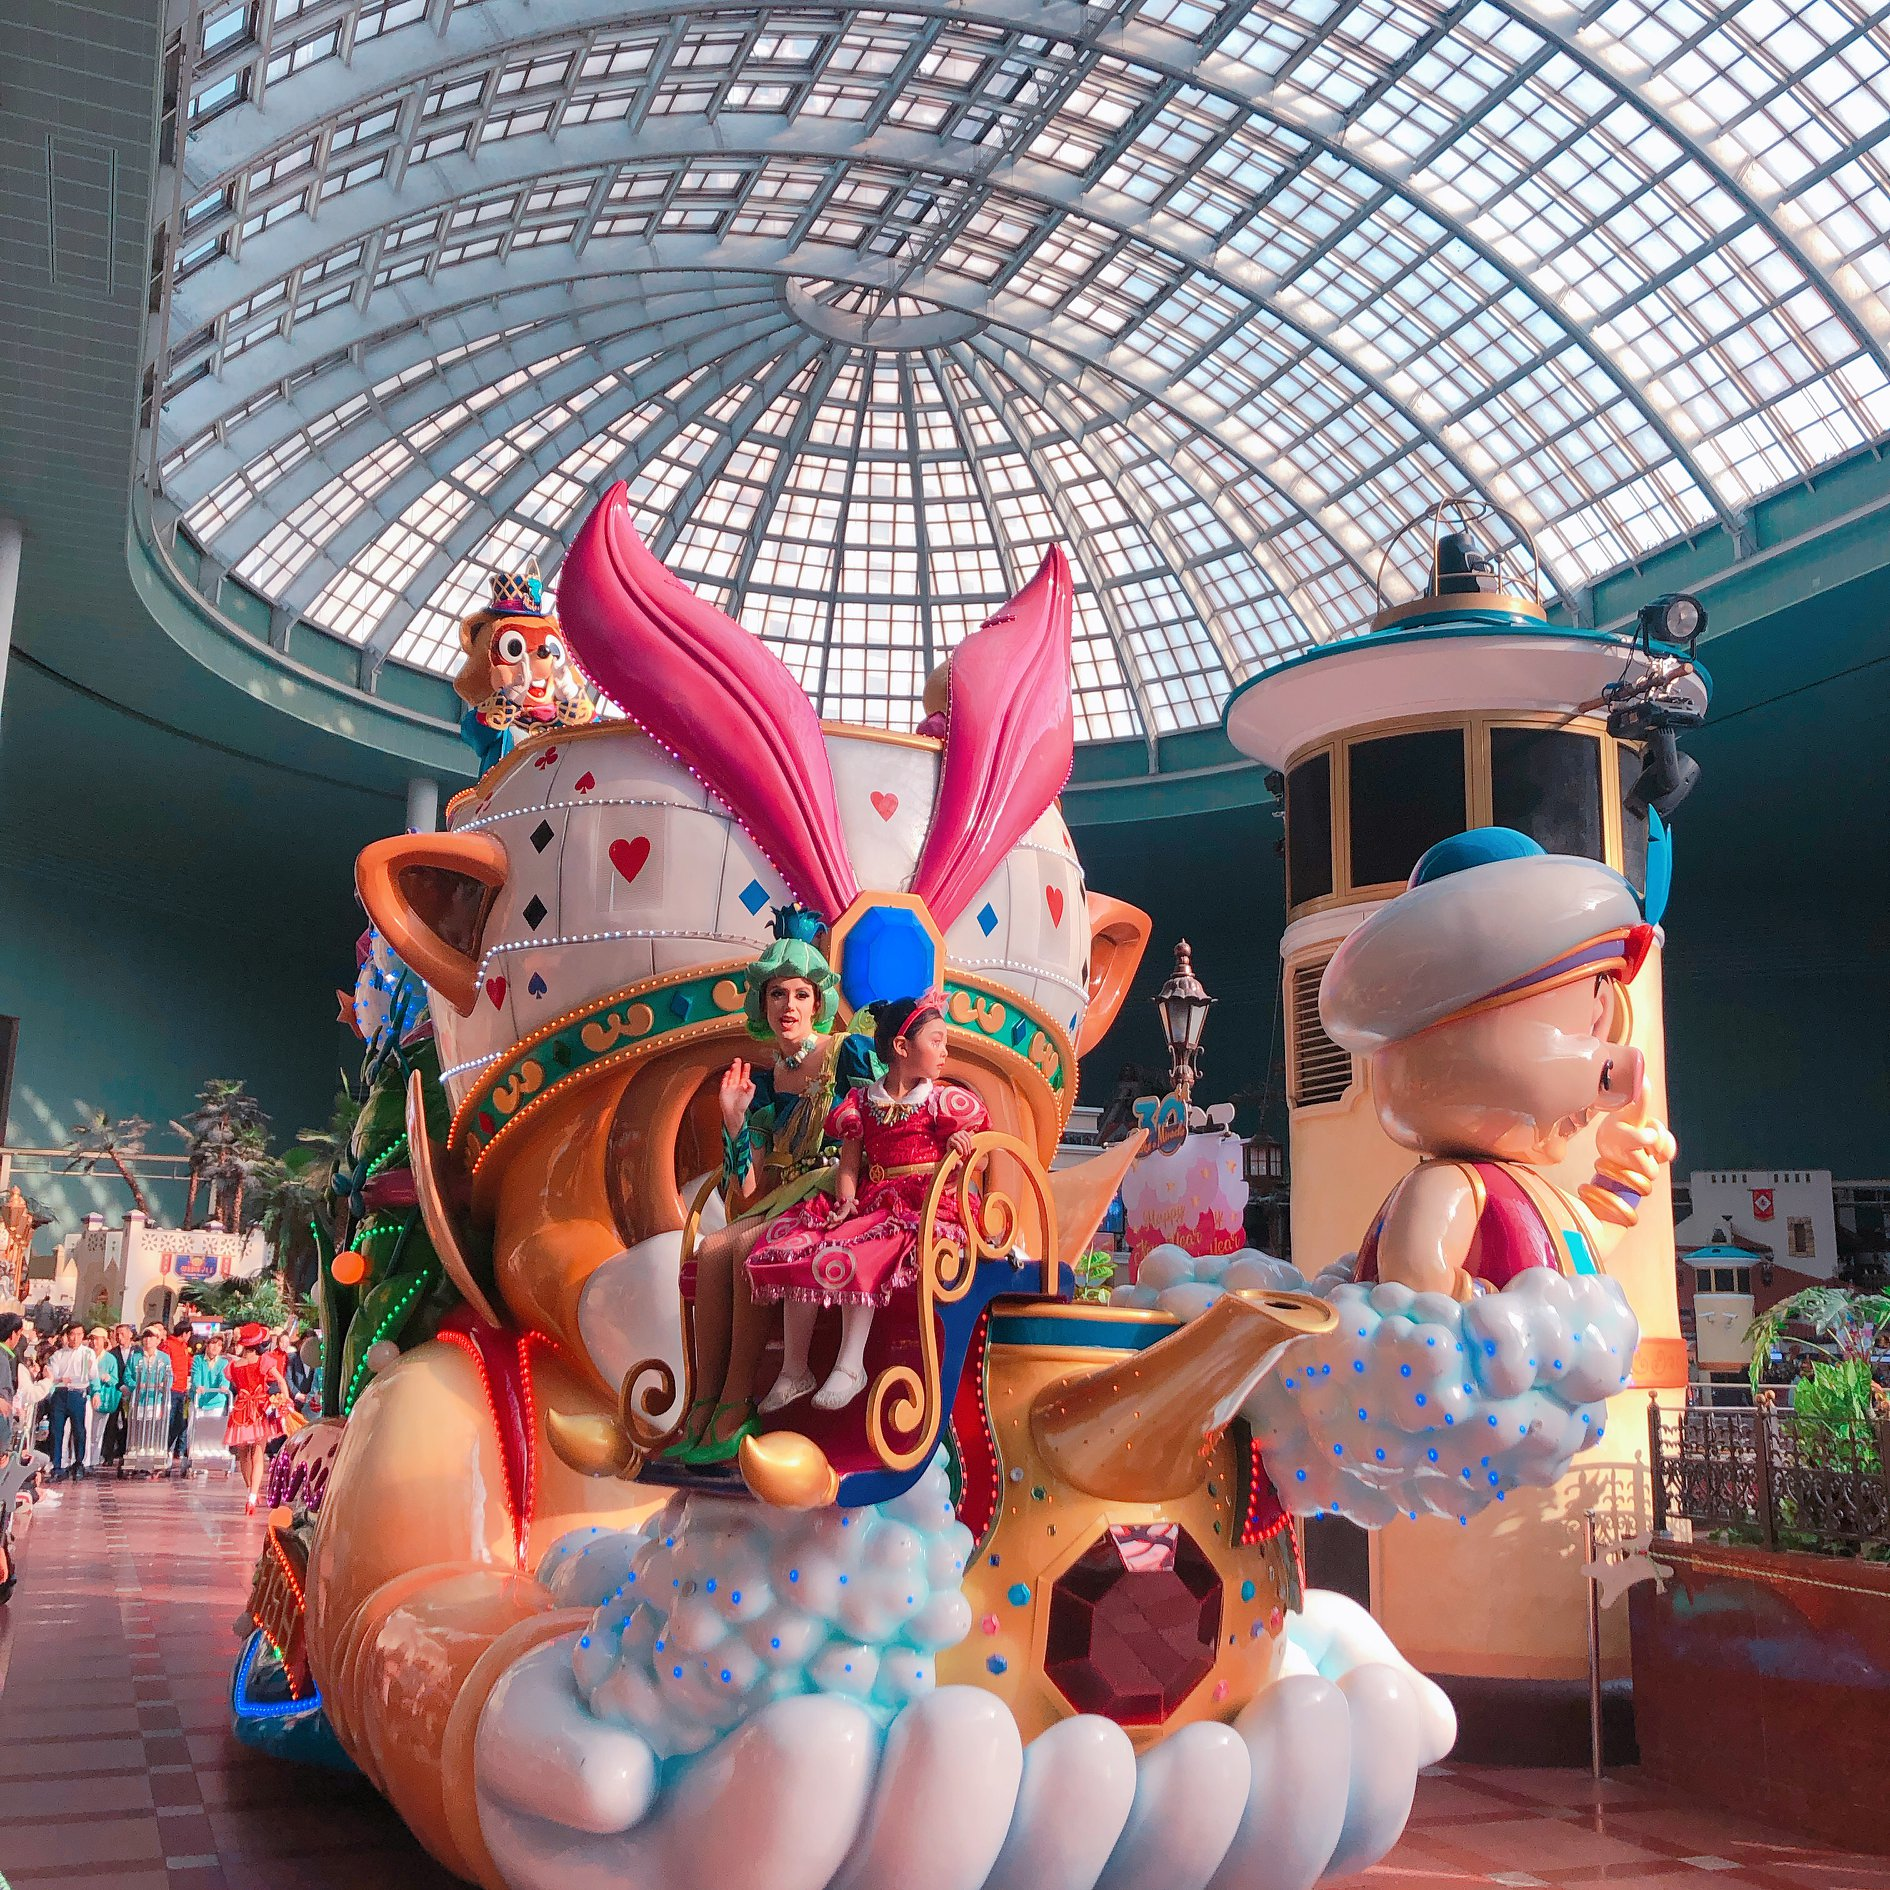 lotte-world-theme-park-seoul-2.jpg